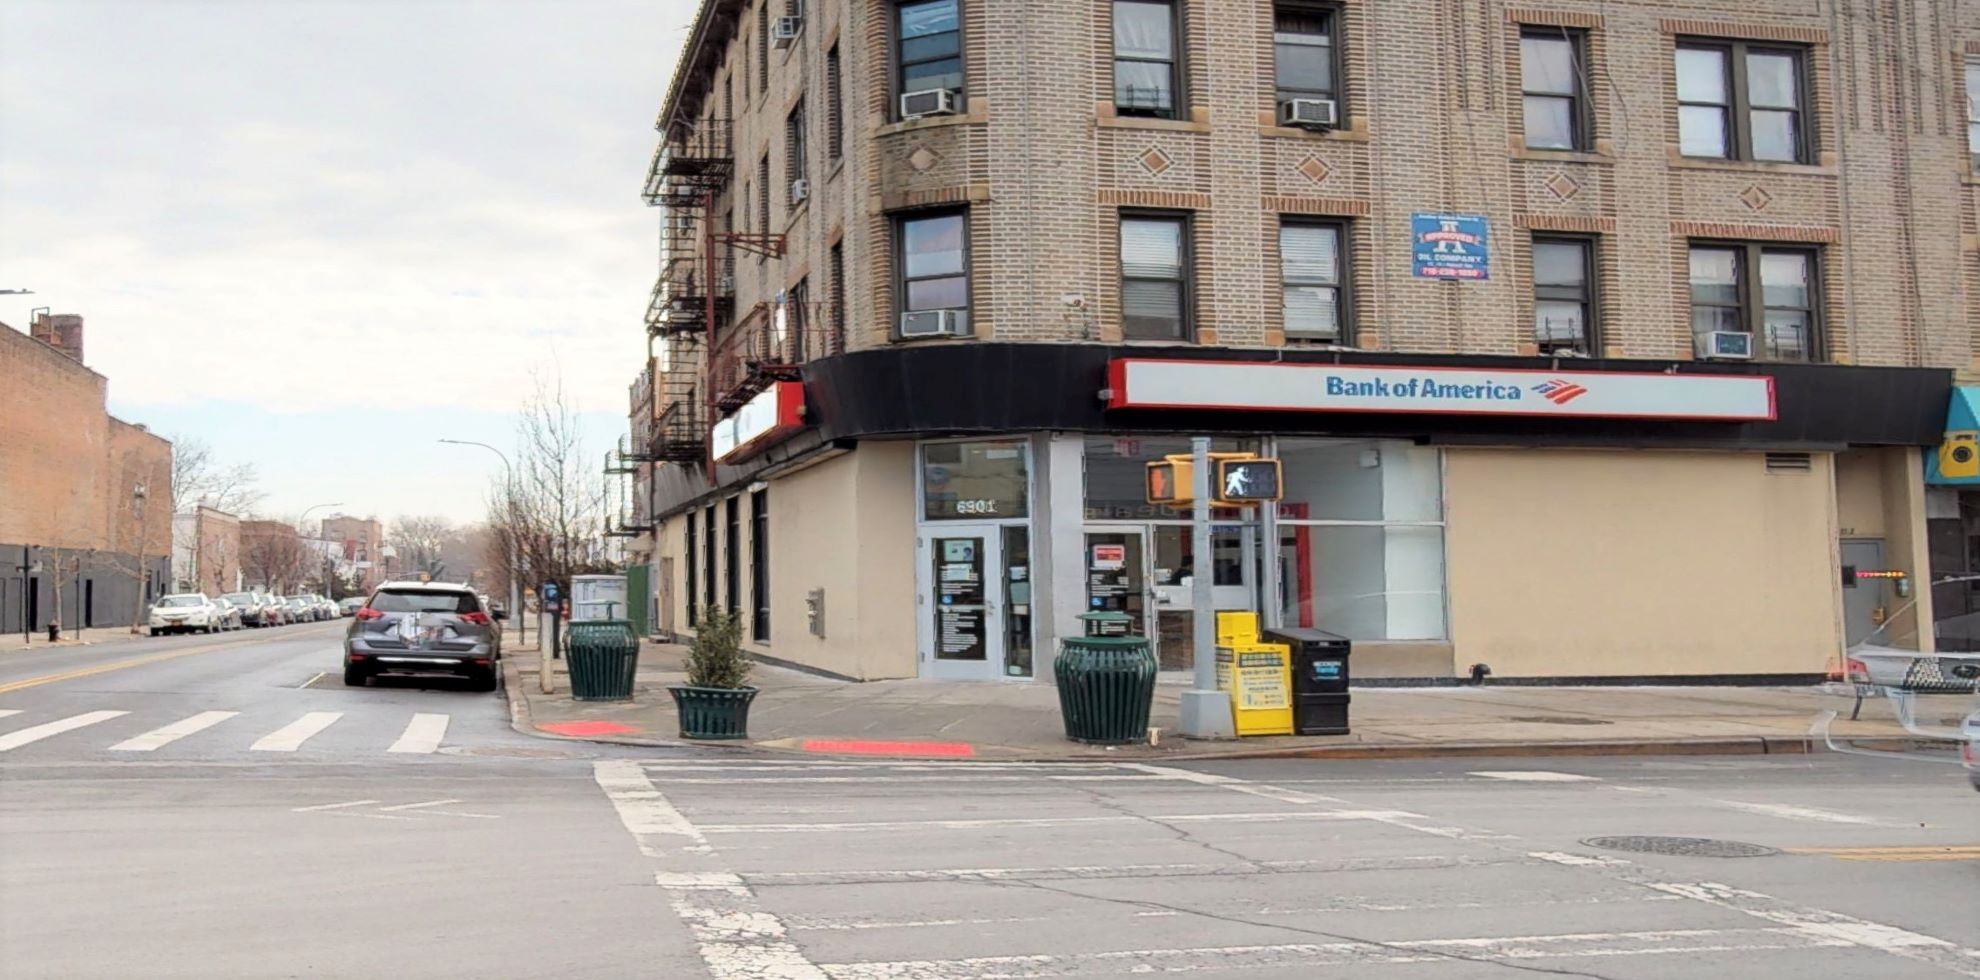 Bank of America financial center with walk-up ATM | 6901 5th Ave, Brooklyn, NY 11209